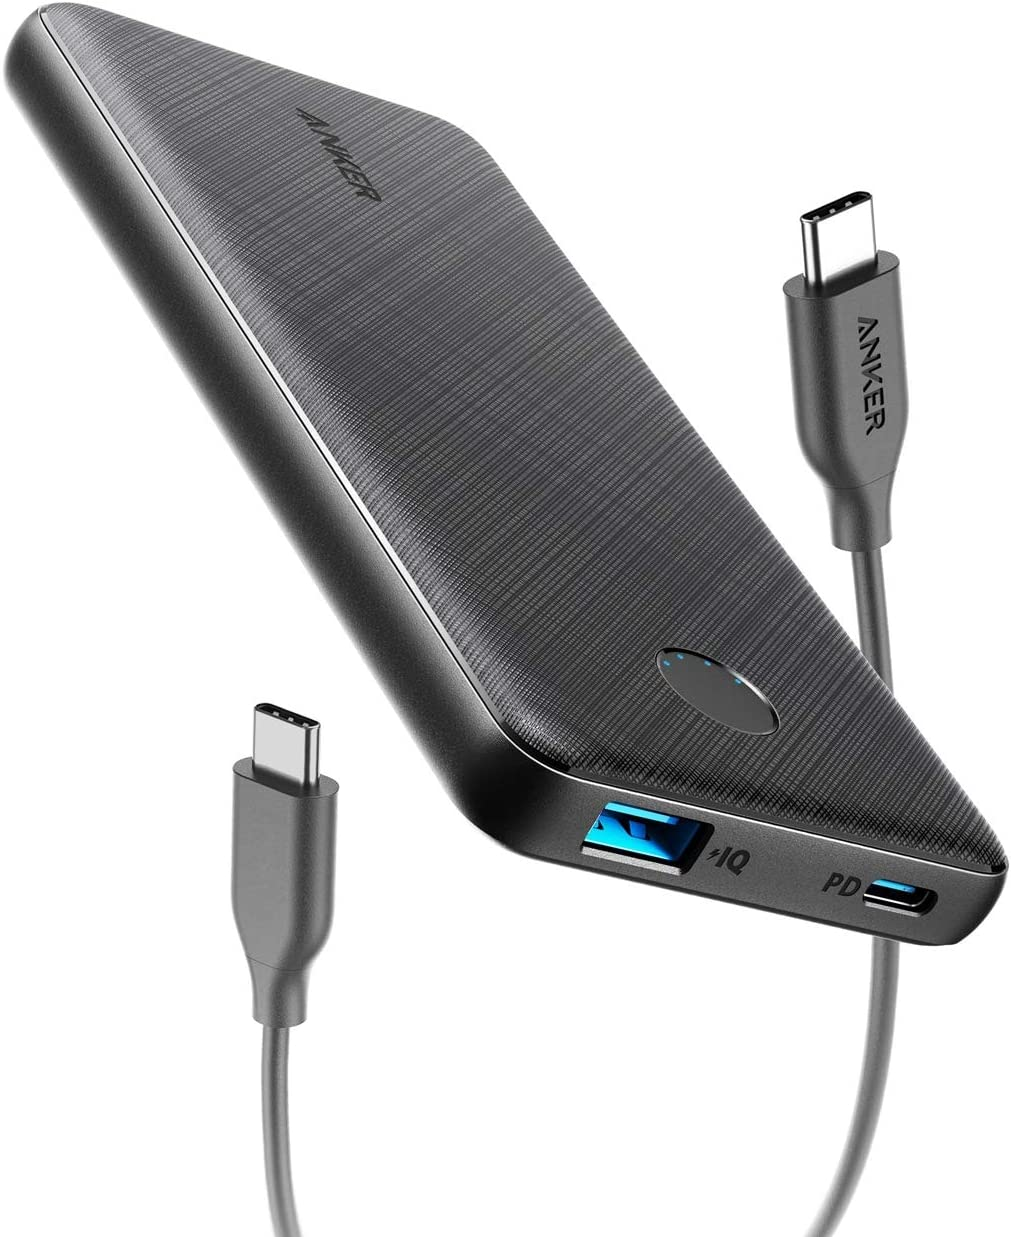 [Upgraded] Anker PowerCore Slim 10000 PD, USB-C Portable Charger (18W), 10000mAh Power Delivery Power Bank for iPhone 11 / Pro / 8/ XS/XR, S10, Pixel 3, and More (Charger Not Include)